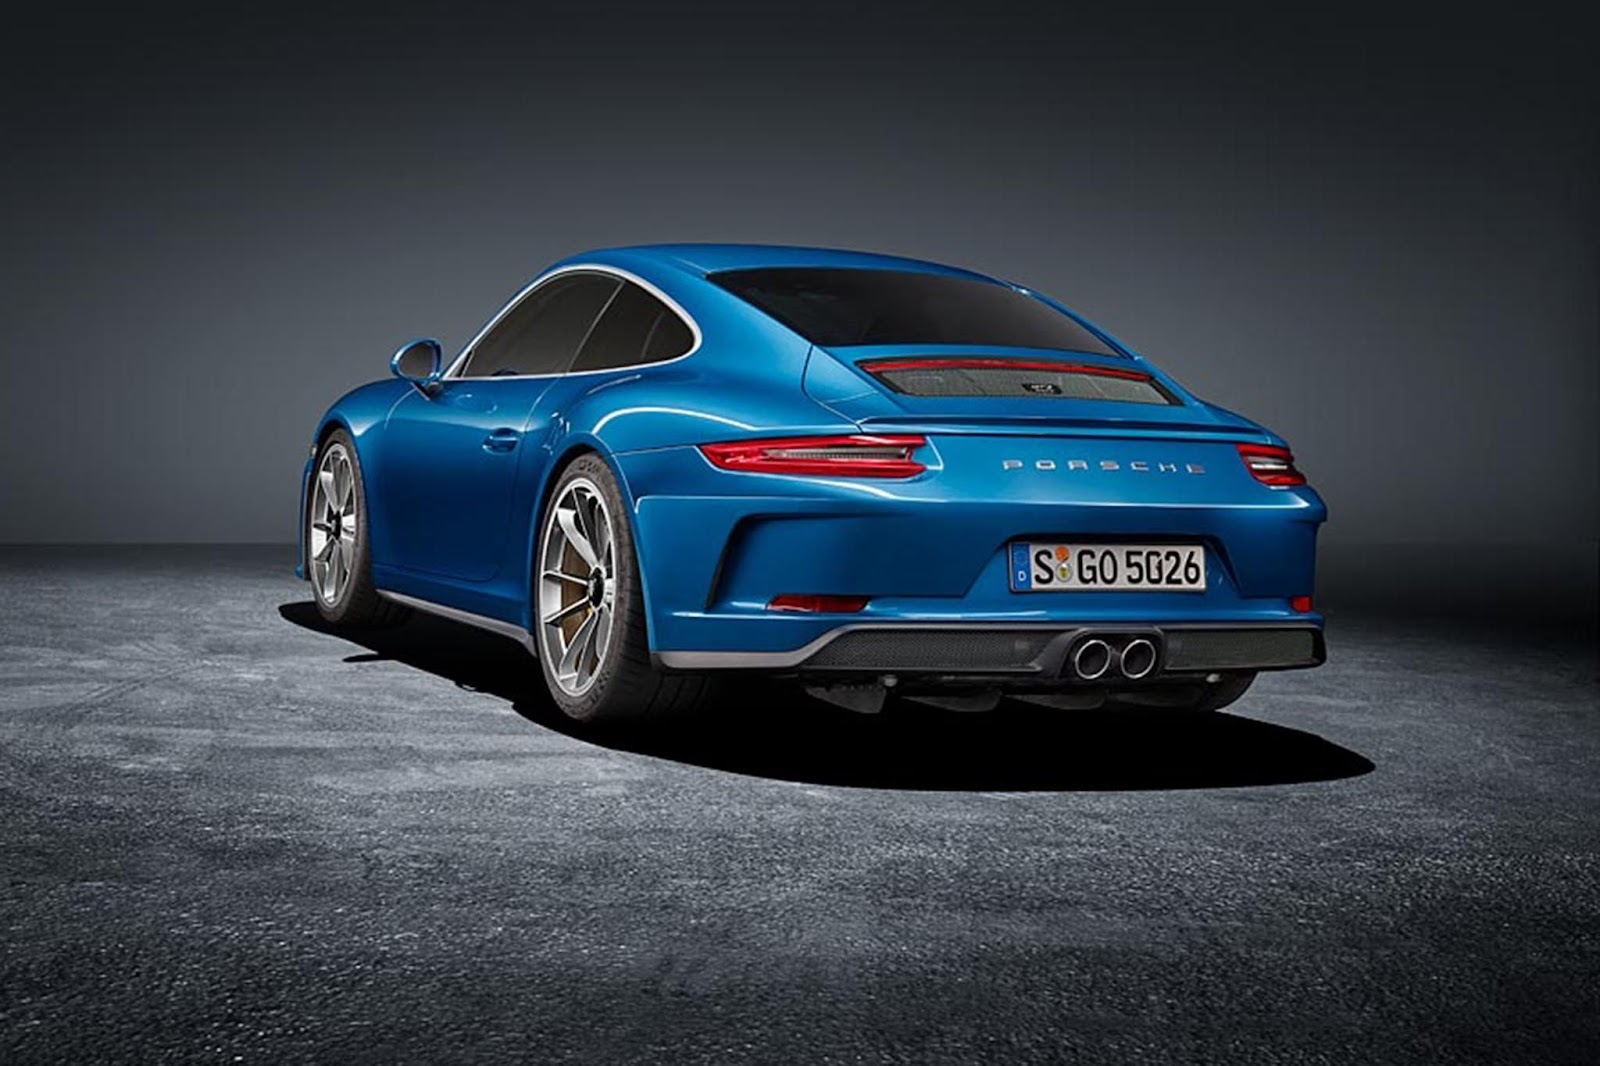 2018-porsche-911-gt3-touring-rear-three-quarters.jpg